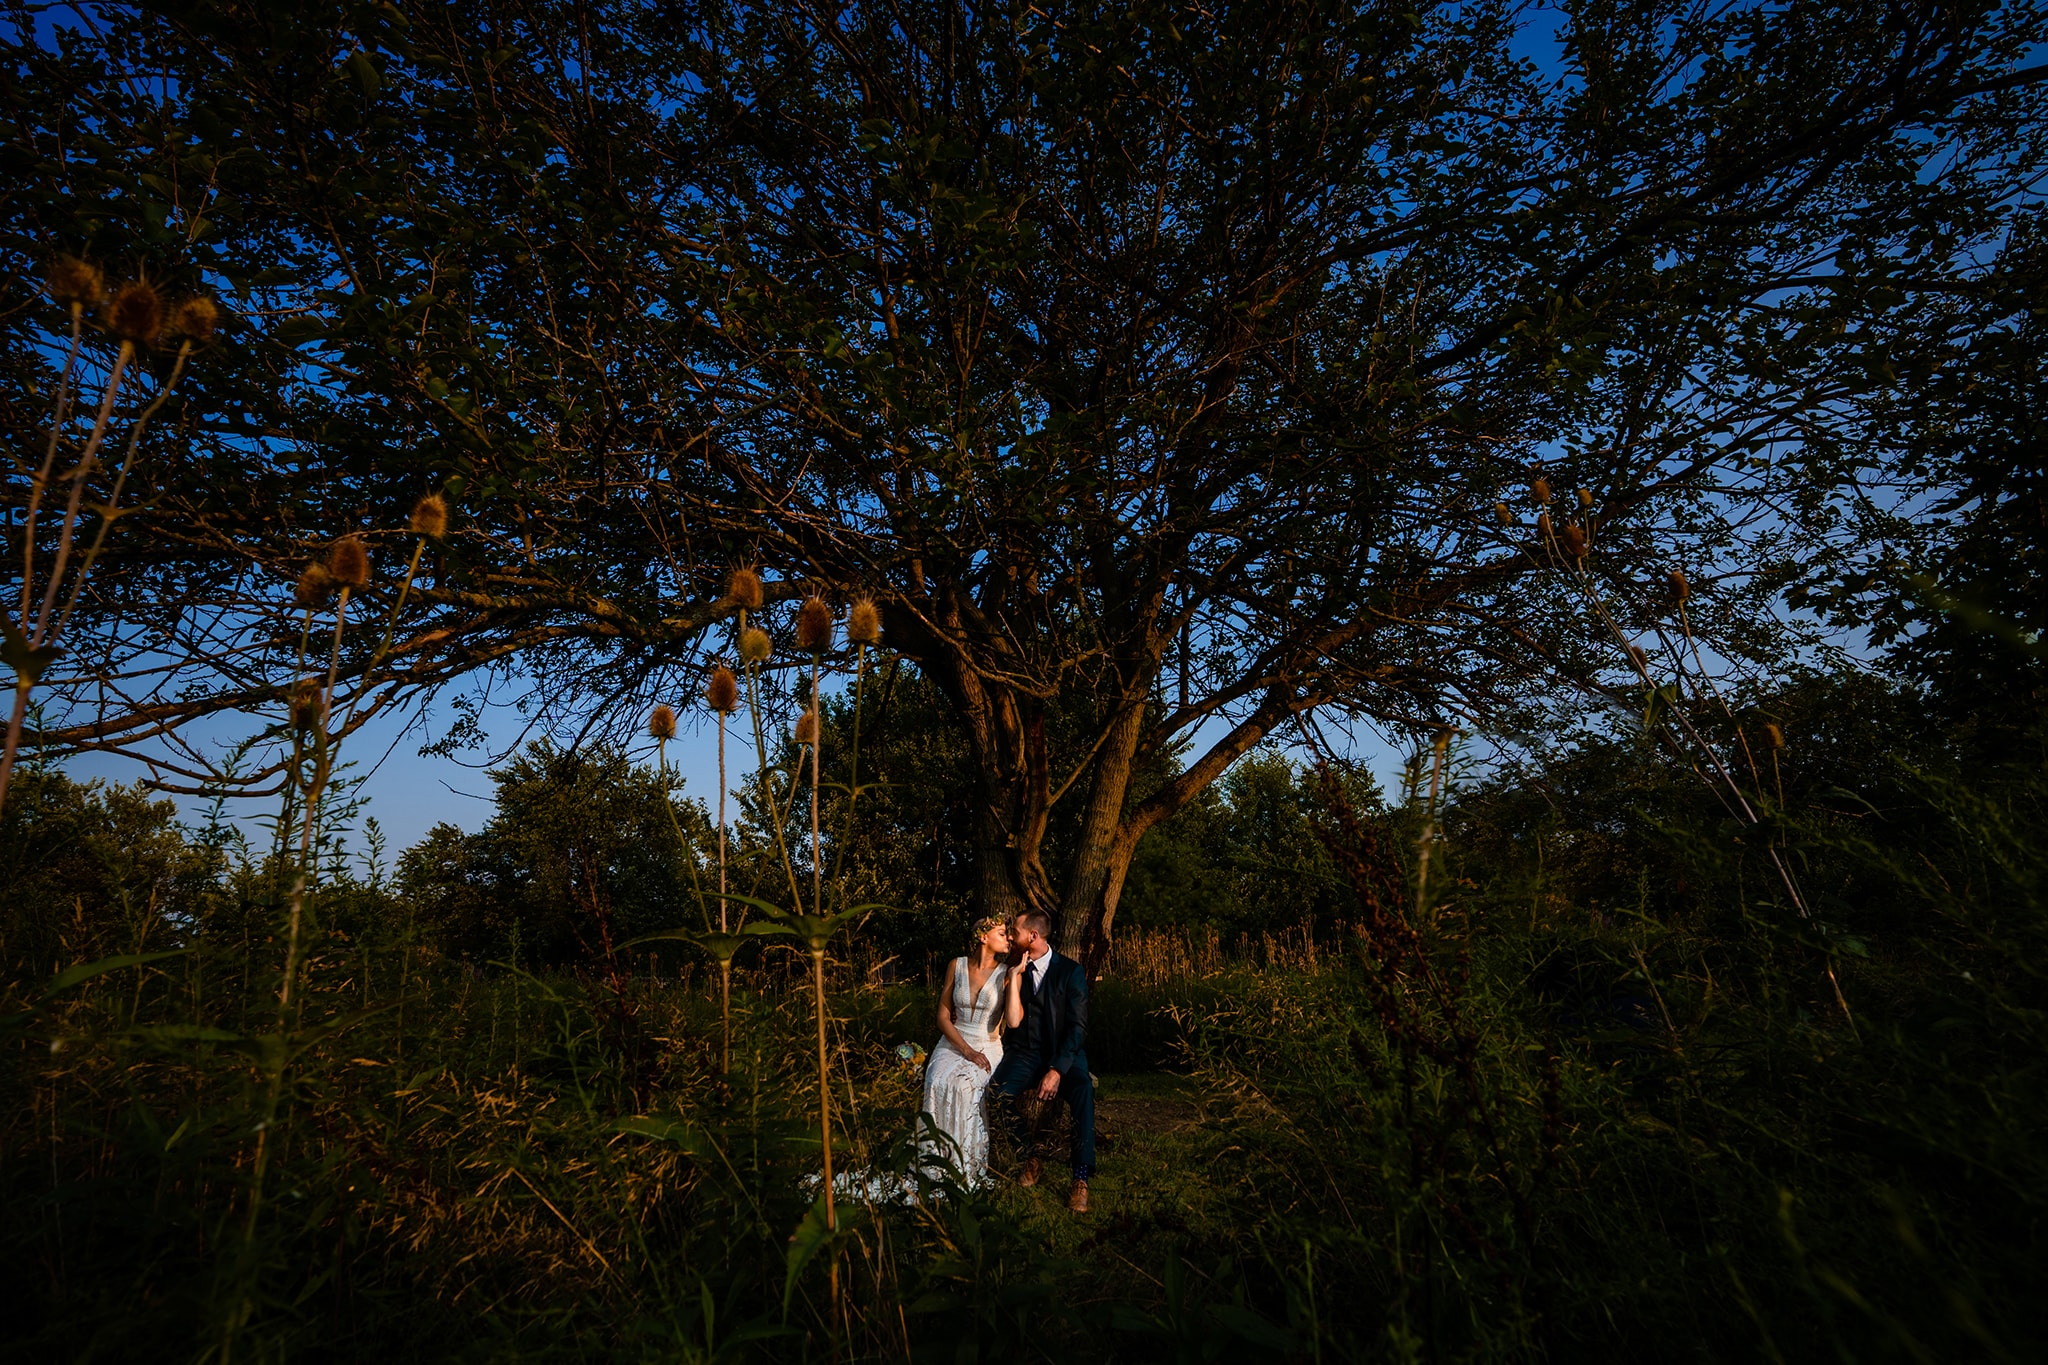 Couple kisses underneath a tree after wedding ceremony in Cincinnati, Ohio by Dayton Wedding Photographer Studio 22 Photography